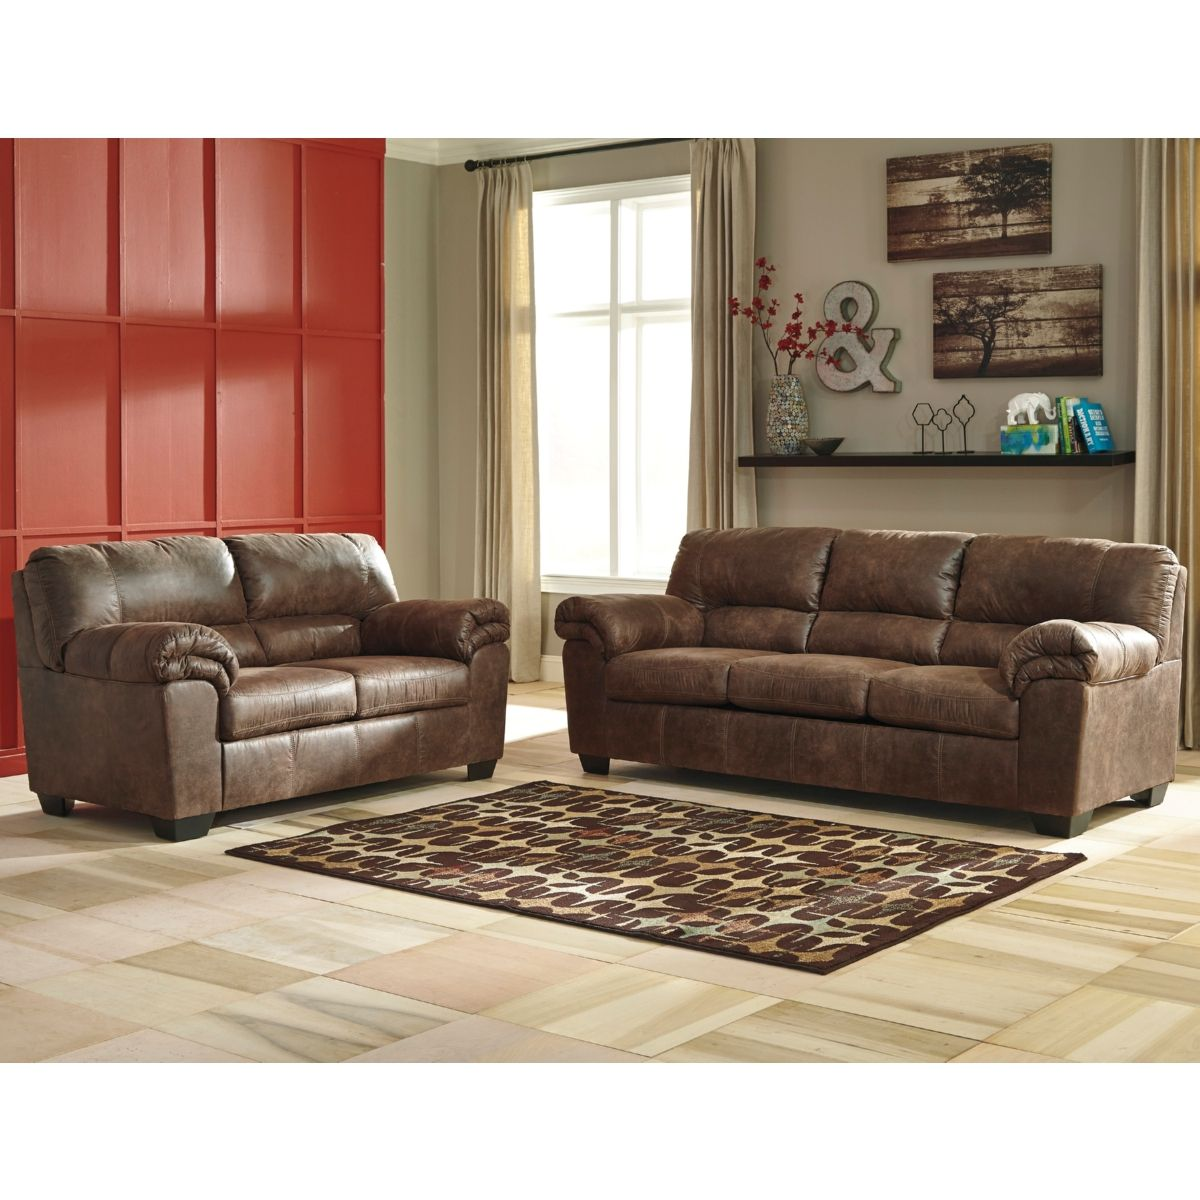 Signature Design By Ashley Bladen Sofa Loveseat In Coffee